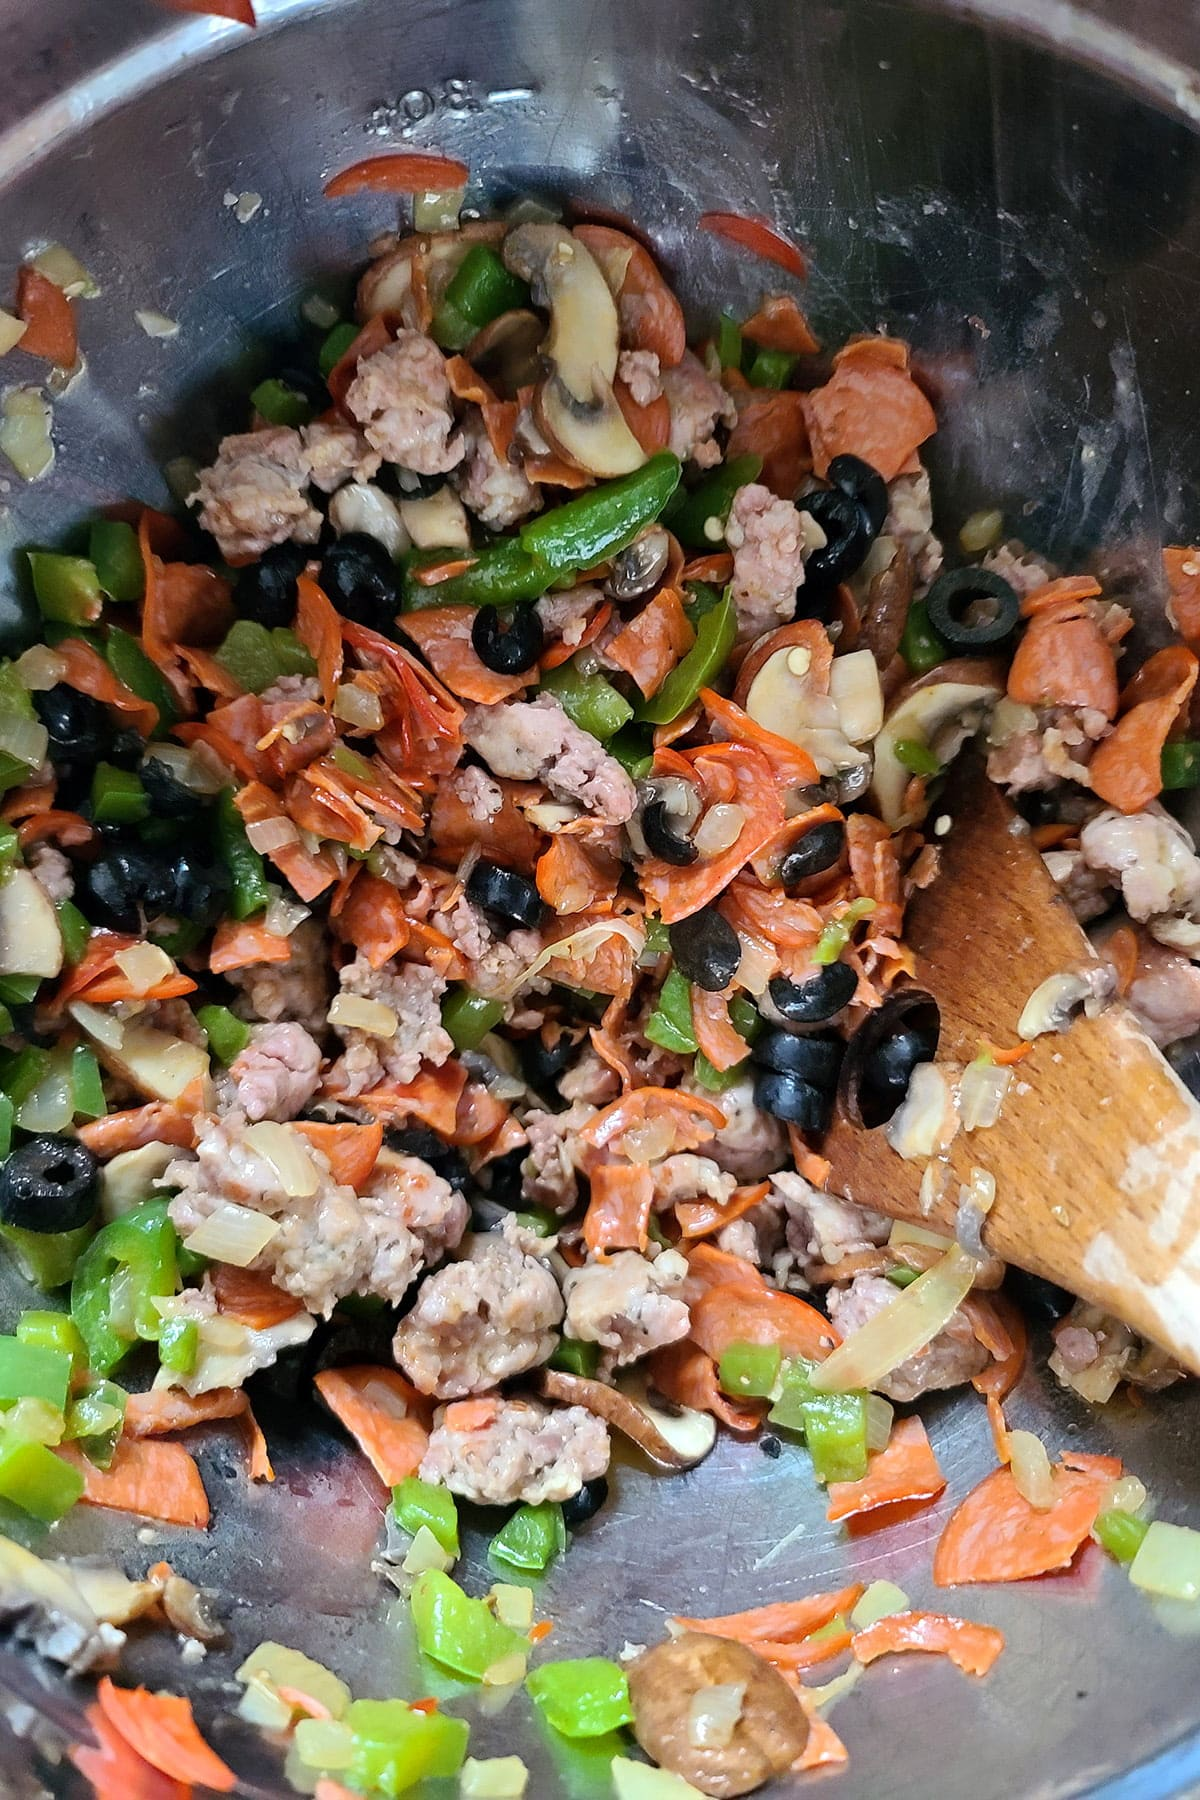 Pepperoni, sausage, green pepper, onion, mushrooms, and black olives together in a bowl.